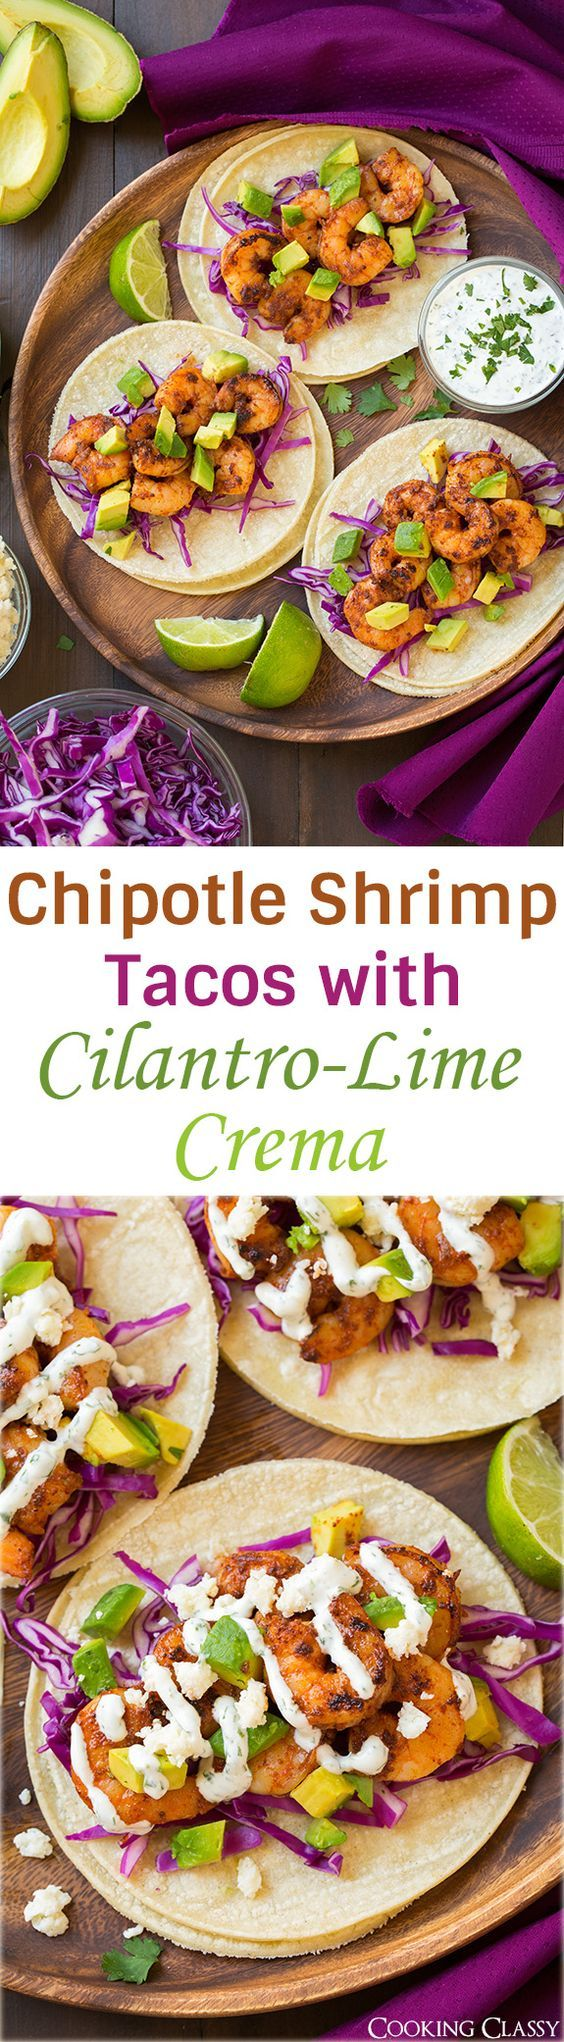 Chipotle Shrimp Tacos with Cilantro Lime Crema - these are easy, flavorful and seriously delicious!!: